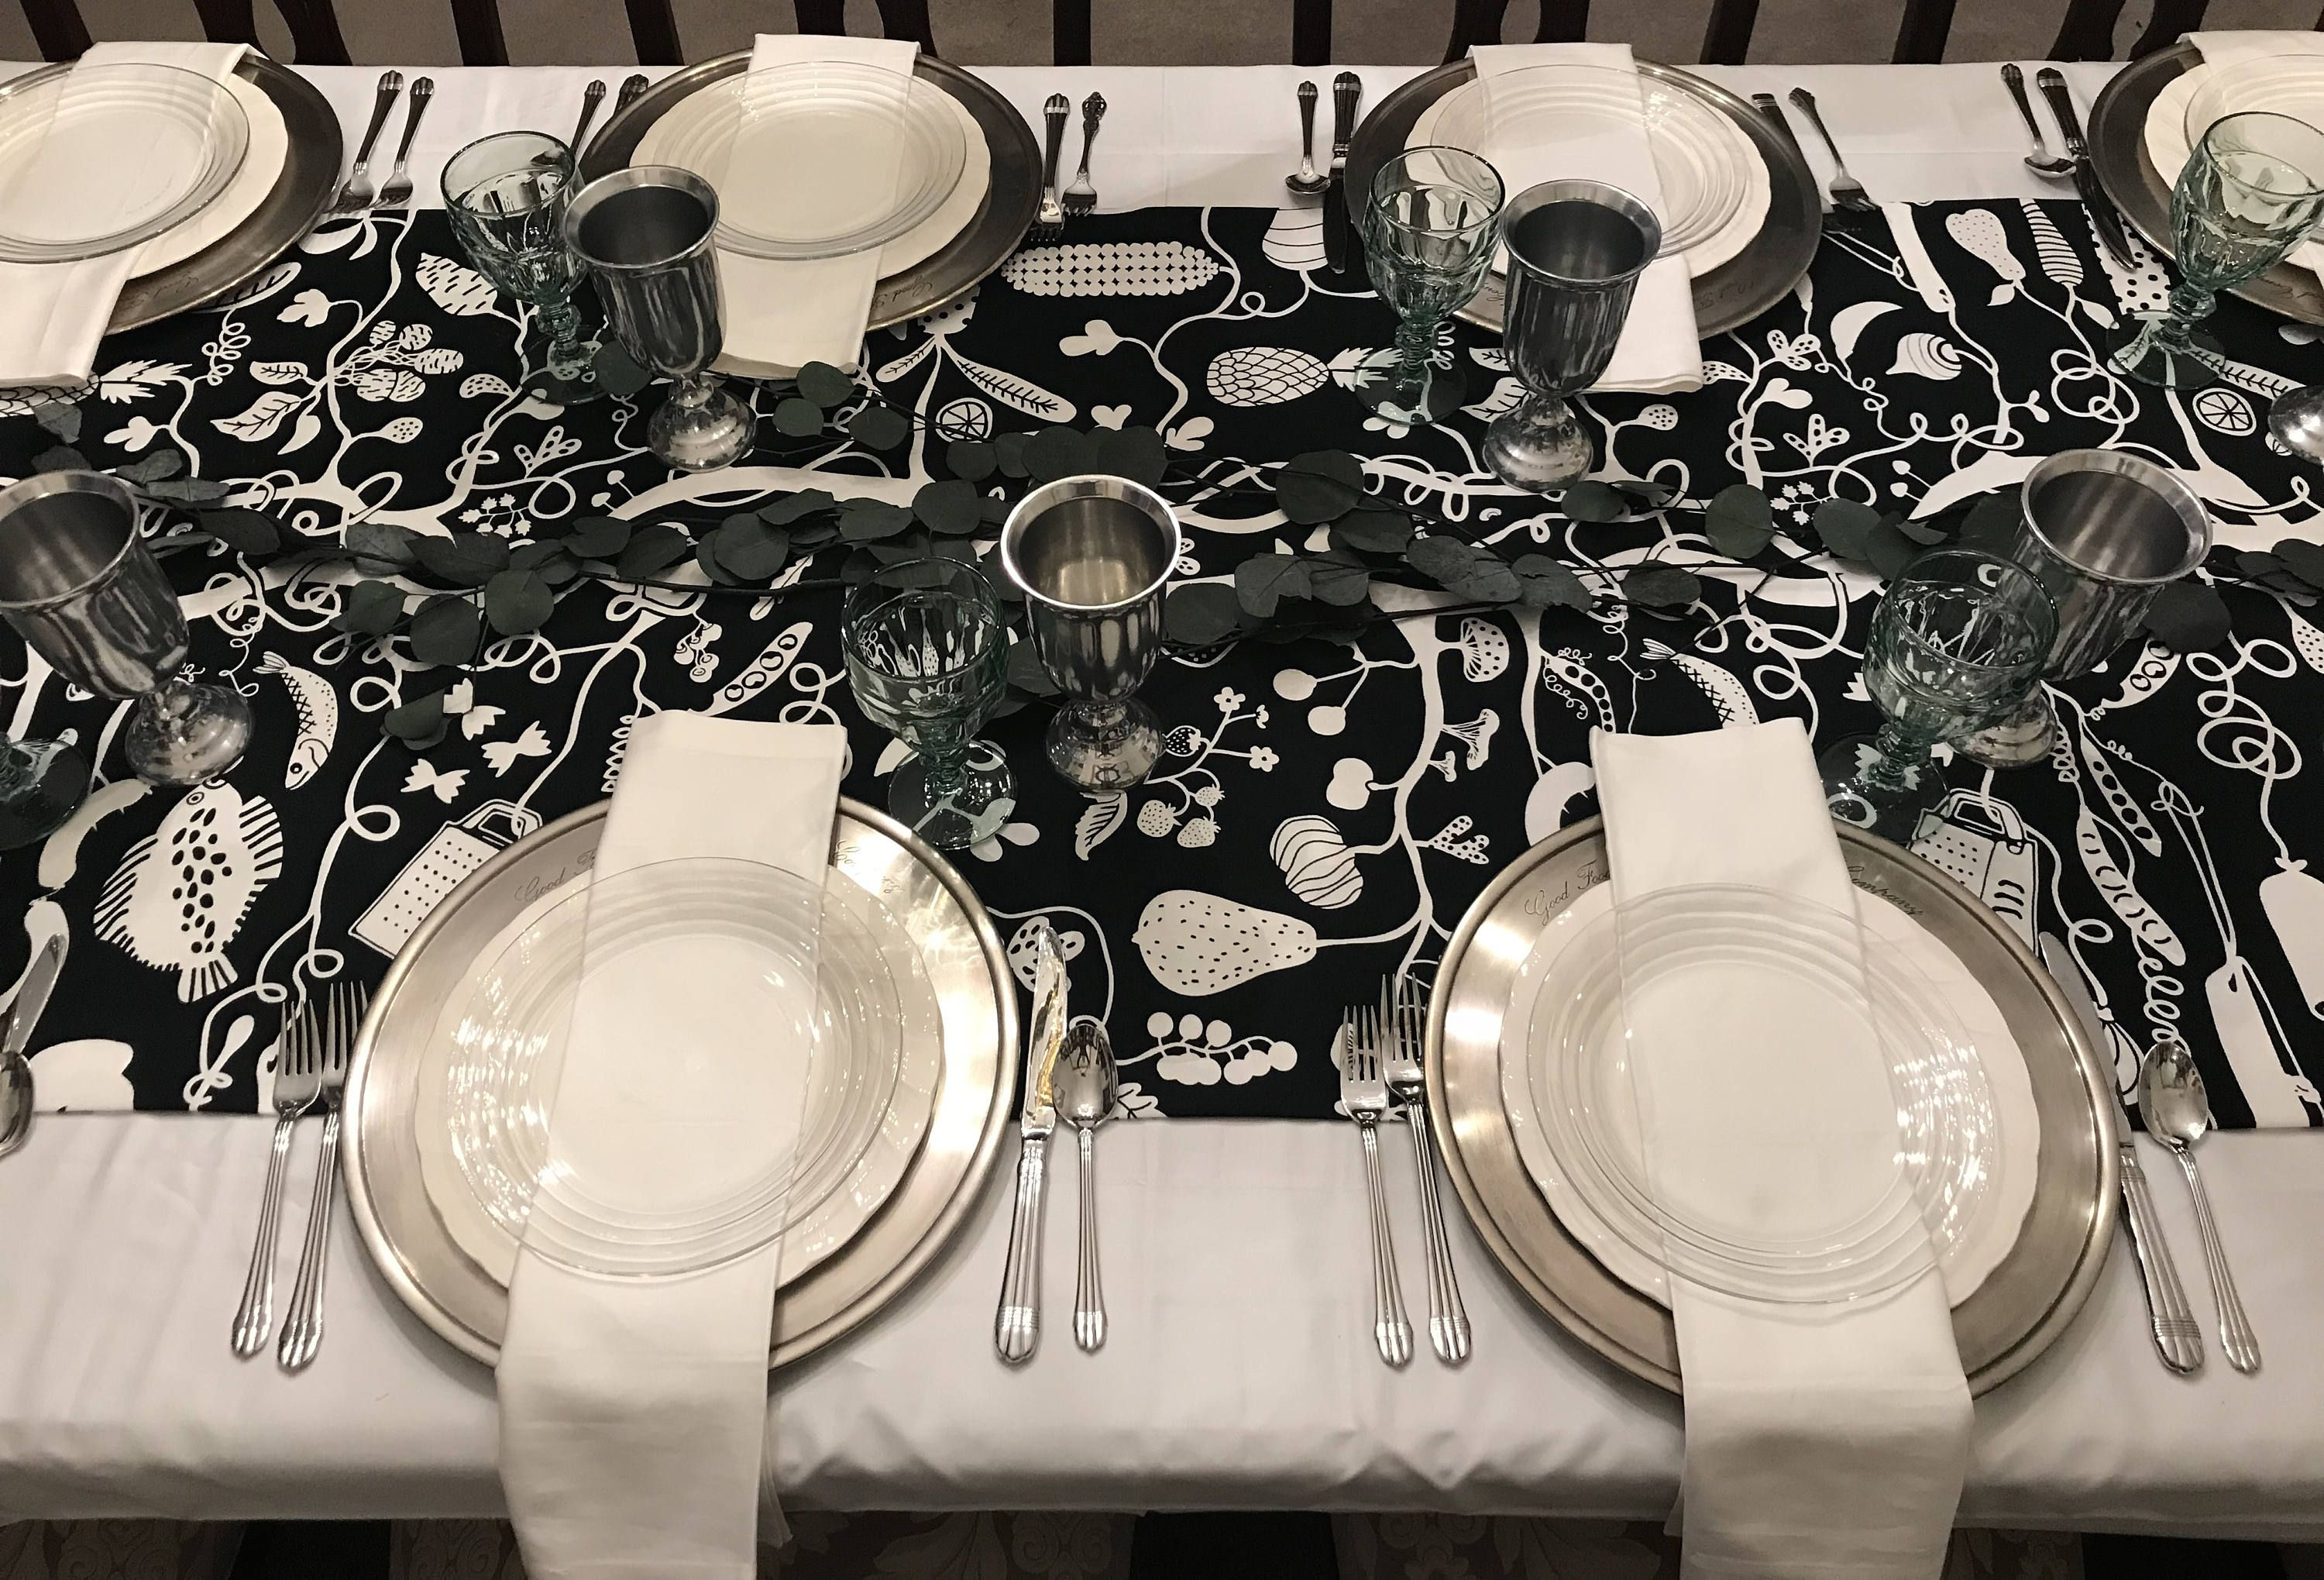 Reinvent Family Gatherings With This Extra Wide Black White Coloring Book Table Runner Holiday Table Settings Thanksgiving Table Linens Christmas Table Cloth